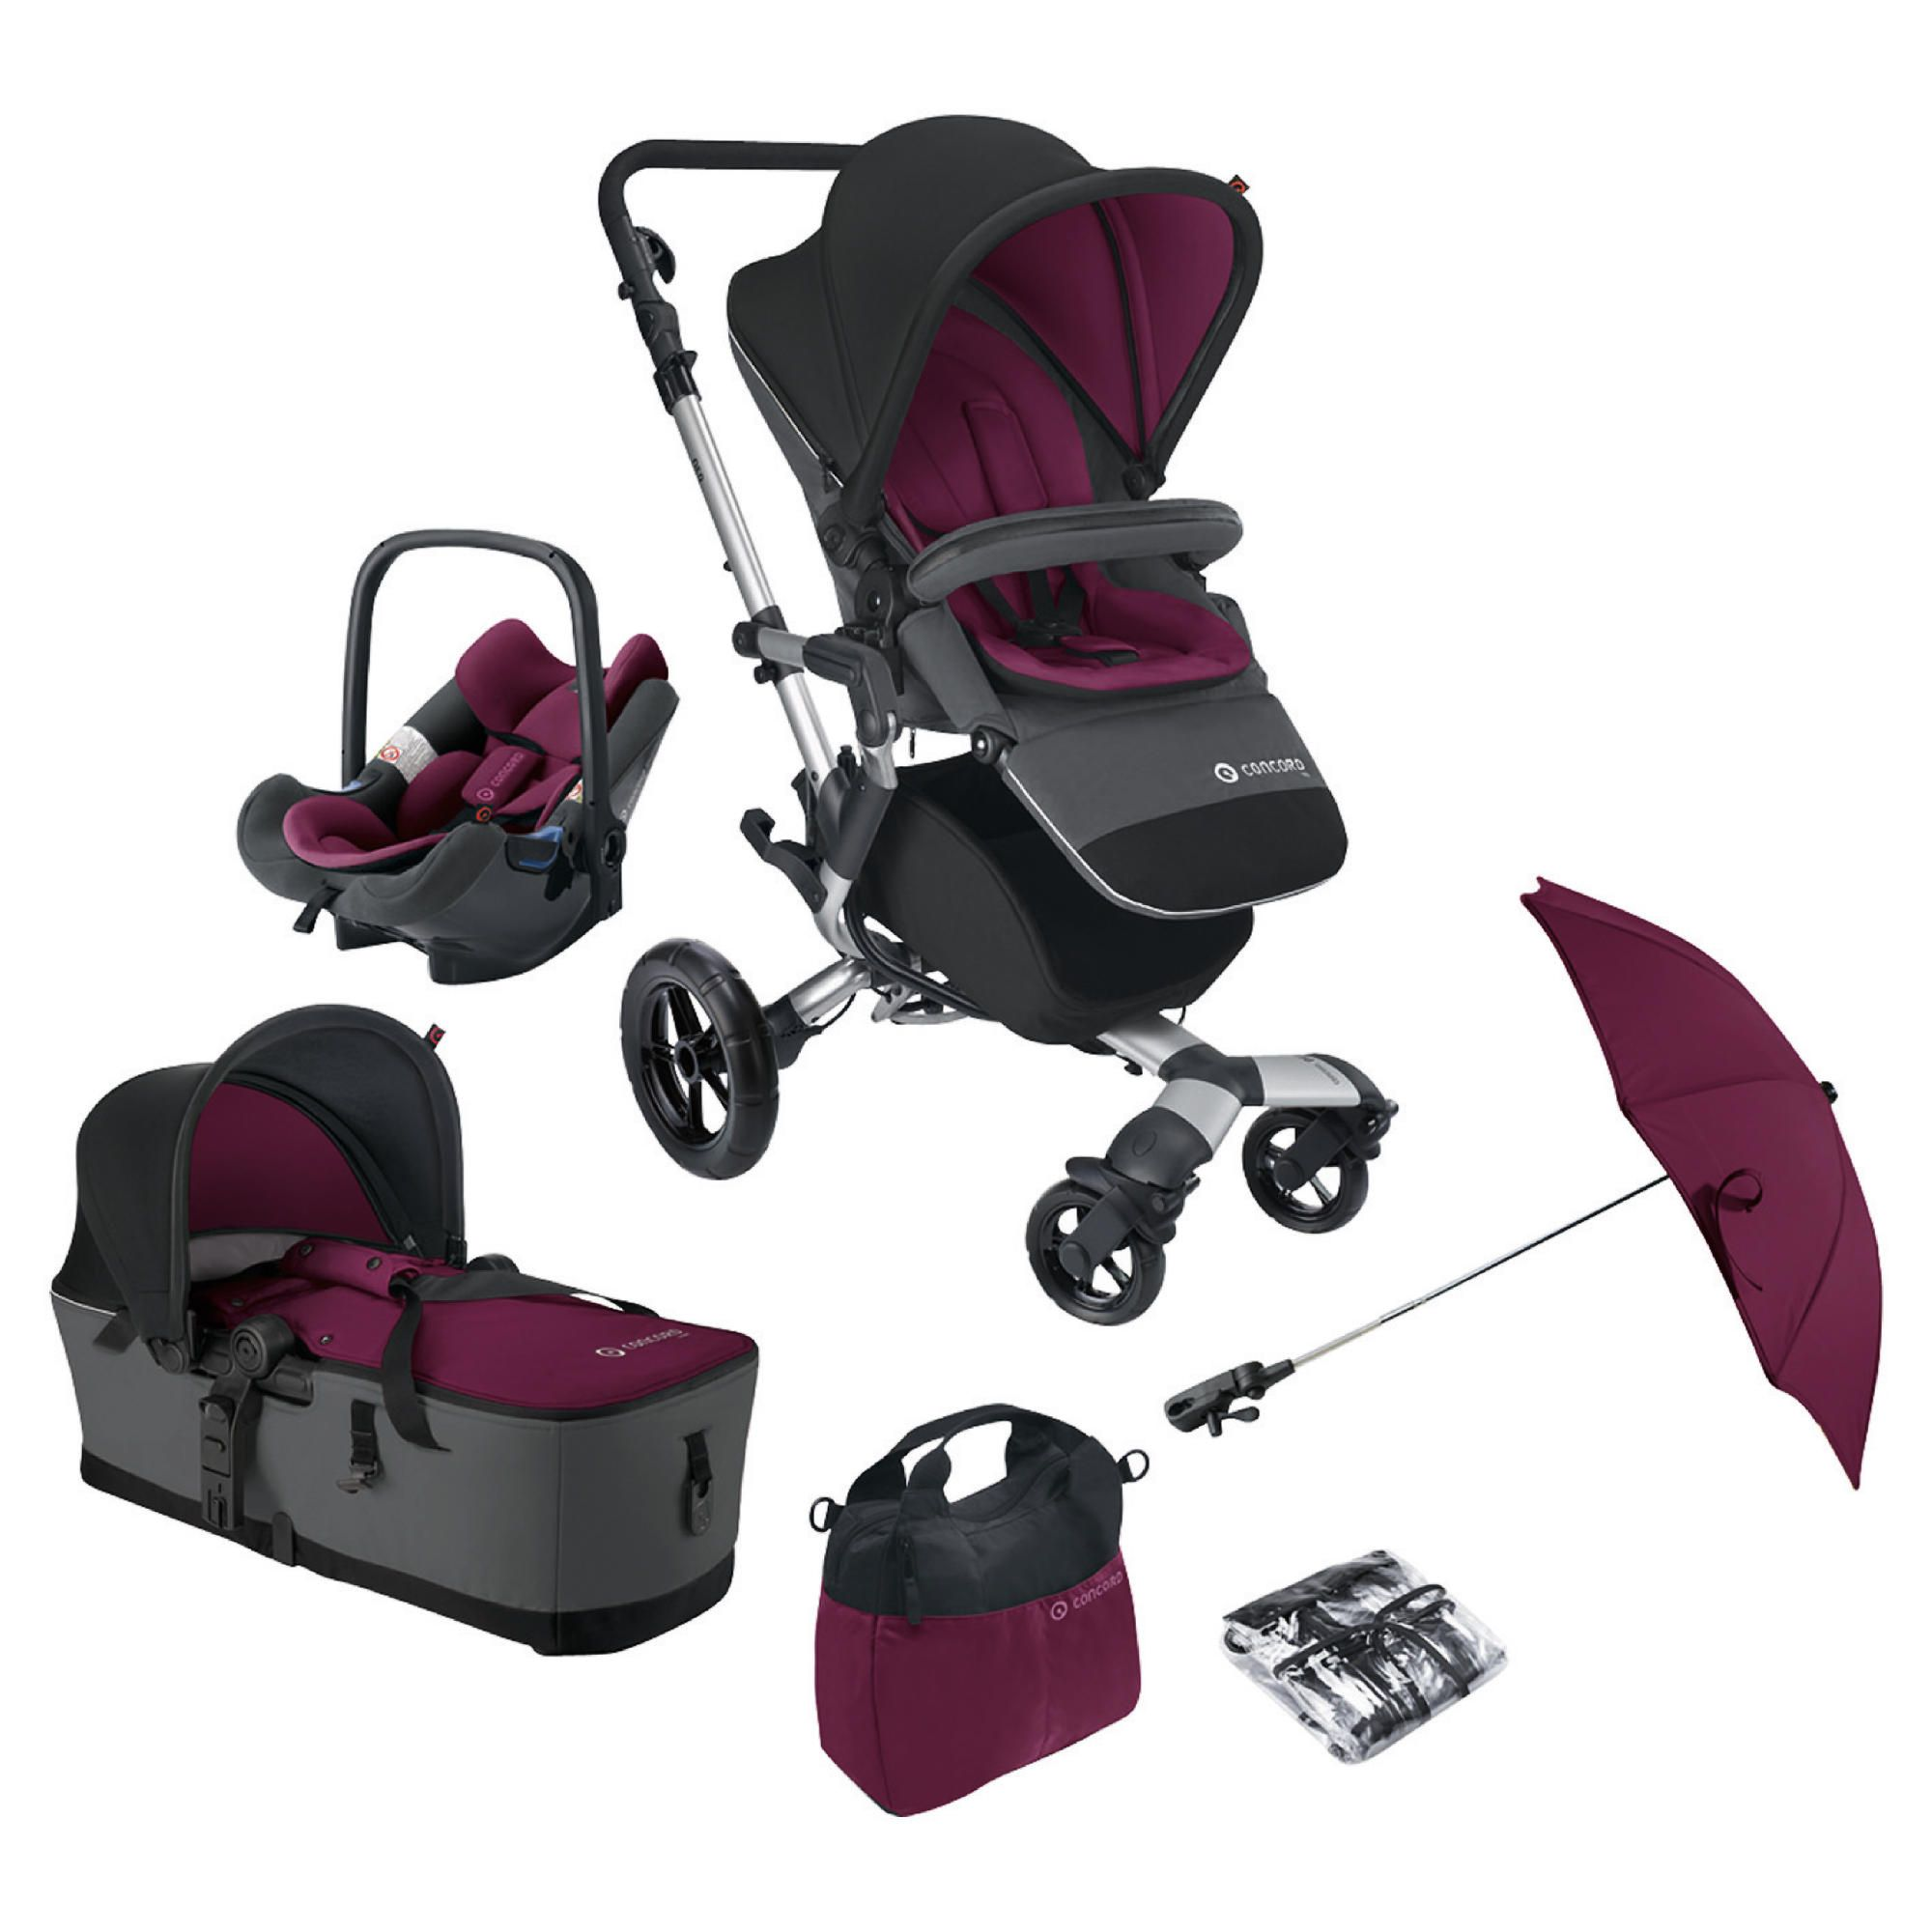 Concord Travel System Neo Mobility Set, Candy at Tesco Direct